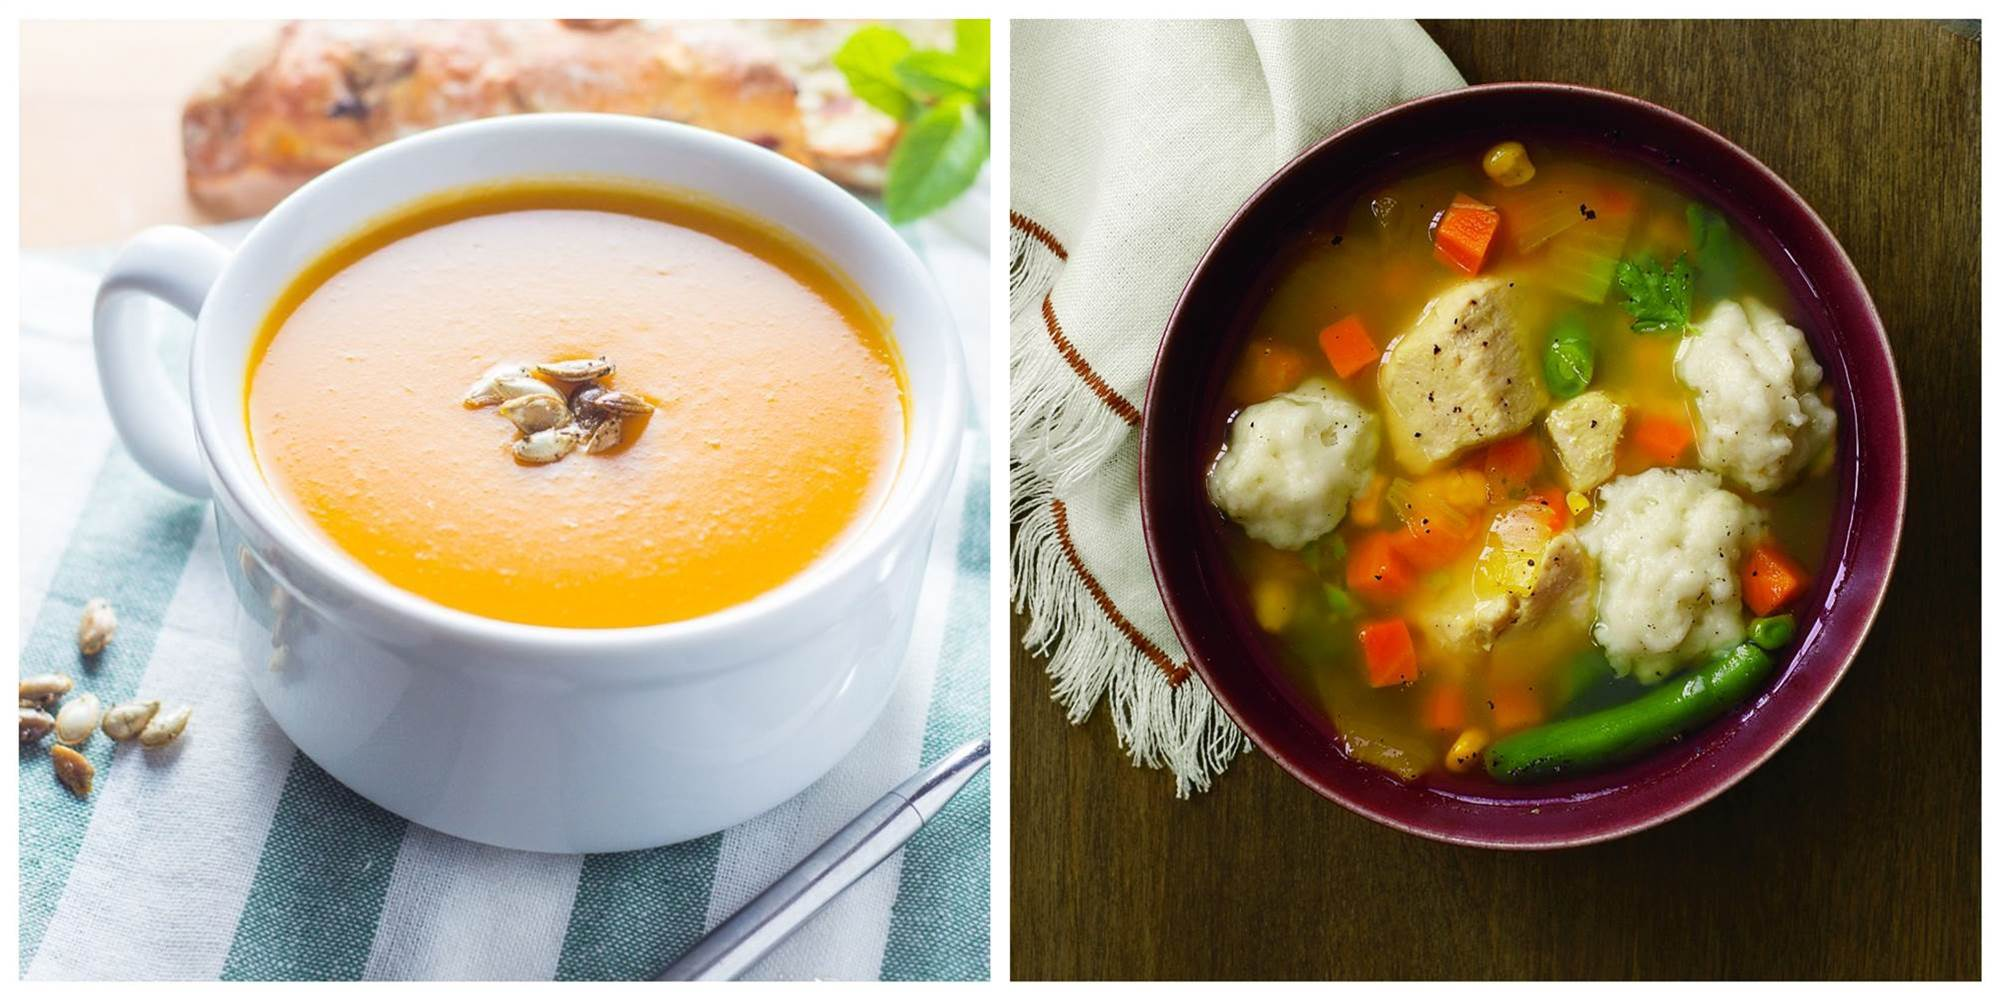 15 Healthy Slow-Cooker Soups That Make Weeknight Dinners So Simple